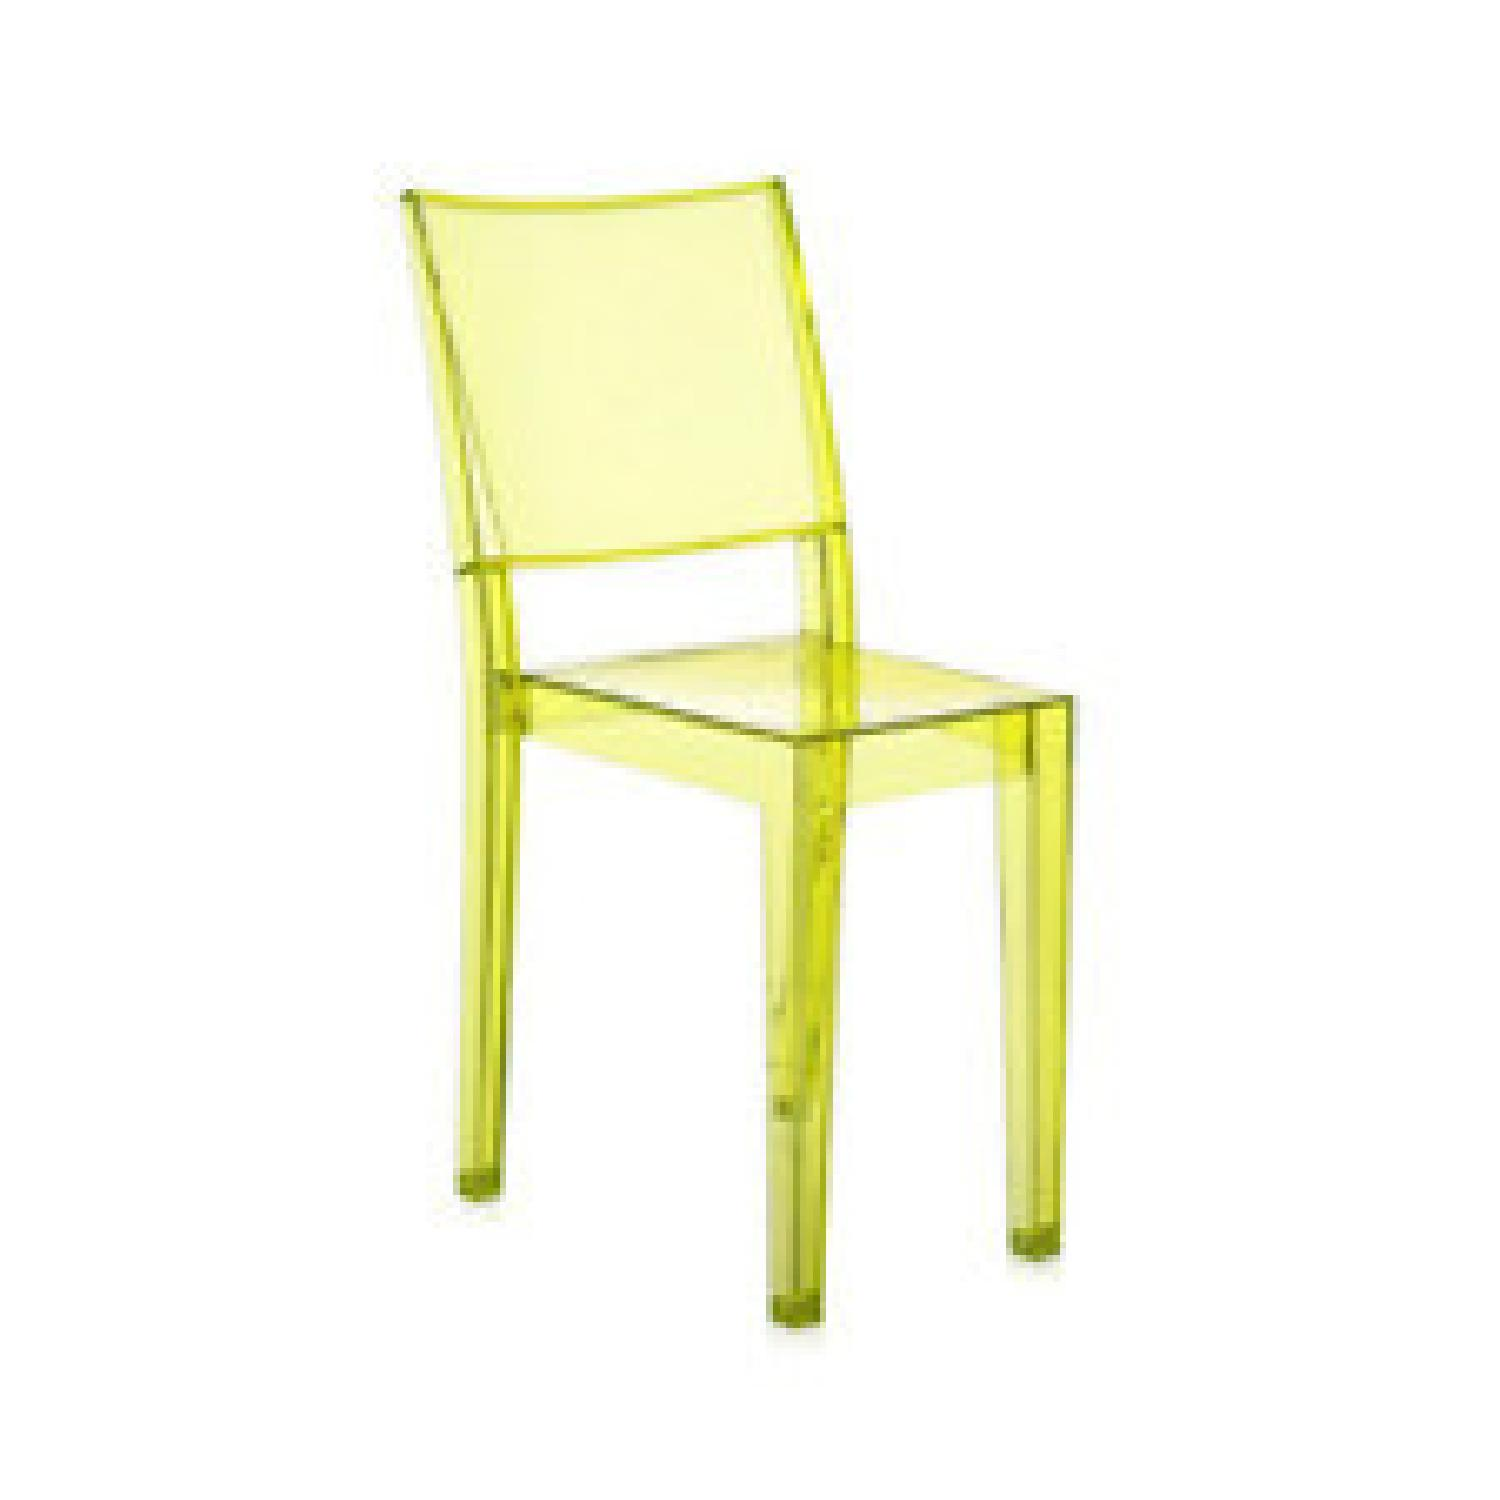 Kartell Green Acrylic Stackable Chairs - image-0